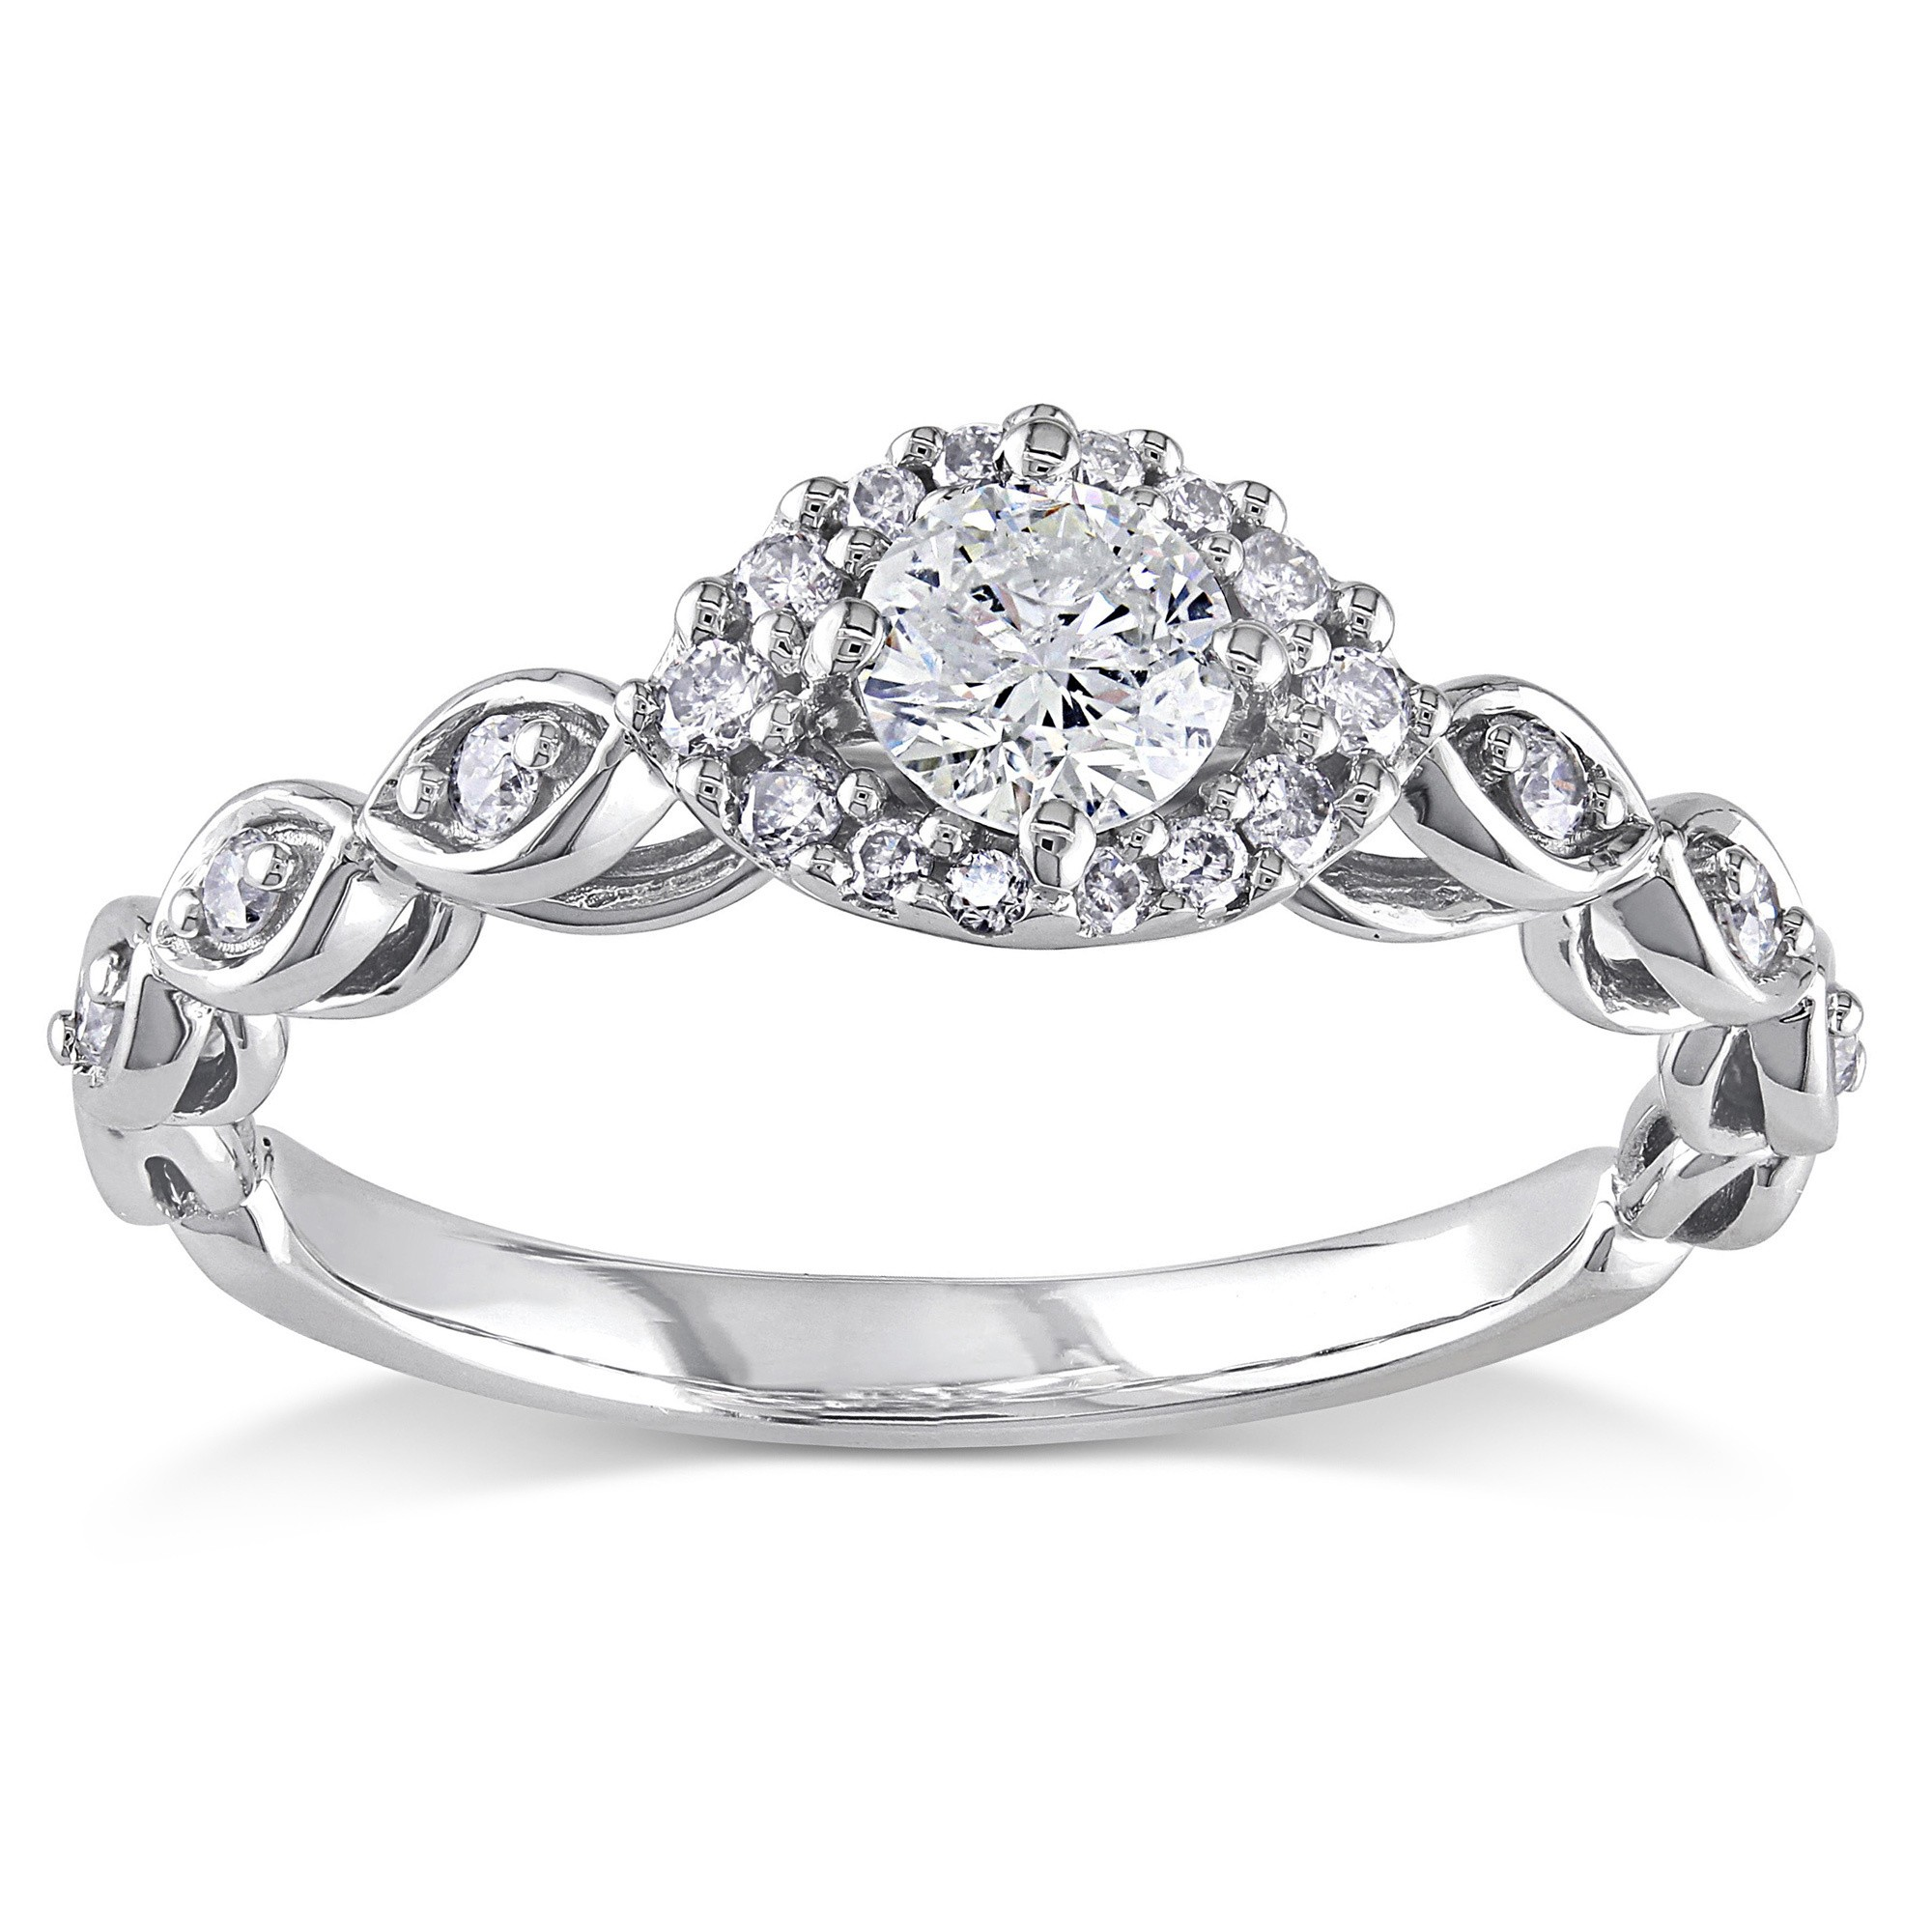 rings wedding fresh solitaire engagement qtrbnd circle emily diamond